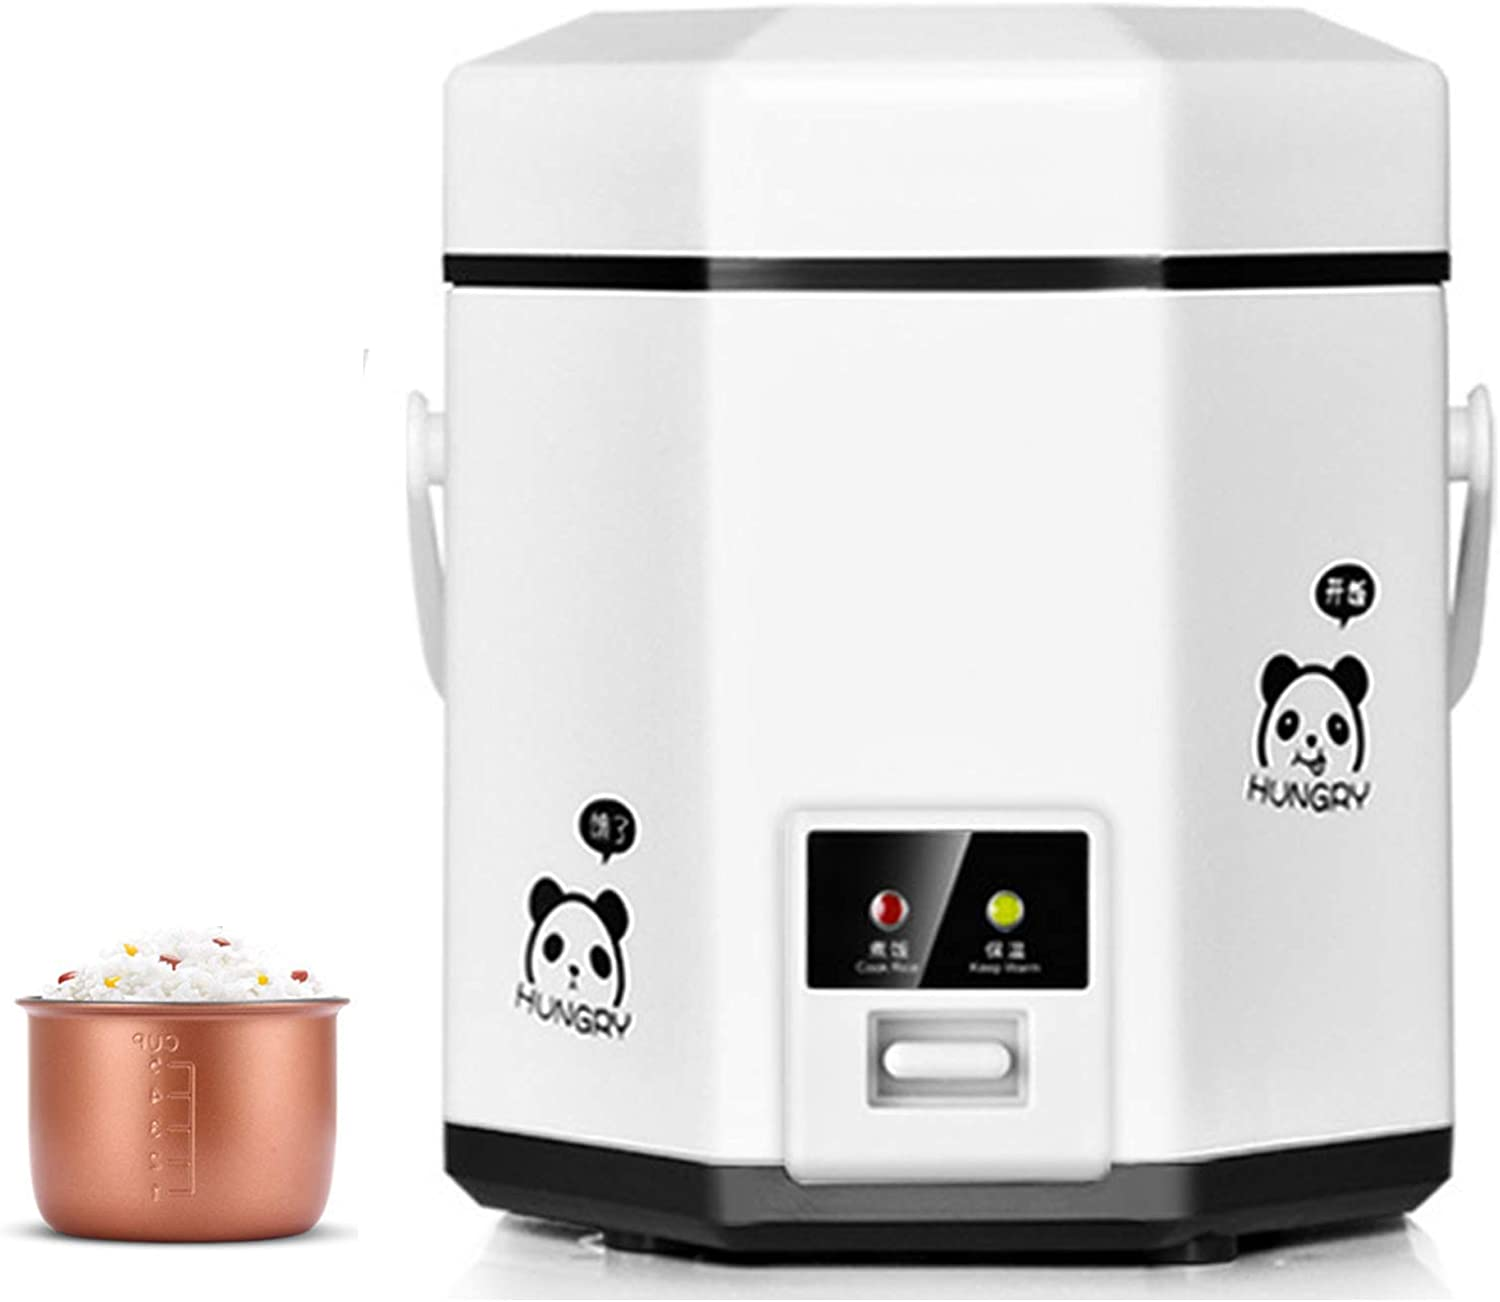 Special price ZYQDRZ Rice Cooker 1-2 Home Recommended Dormitory Mini People